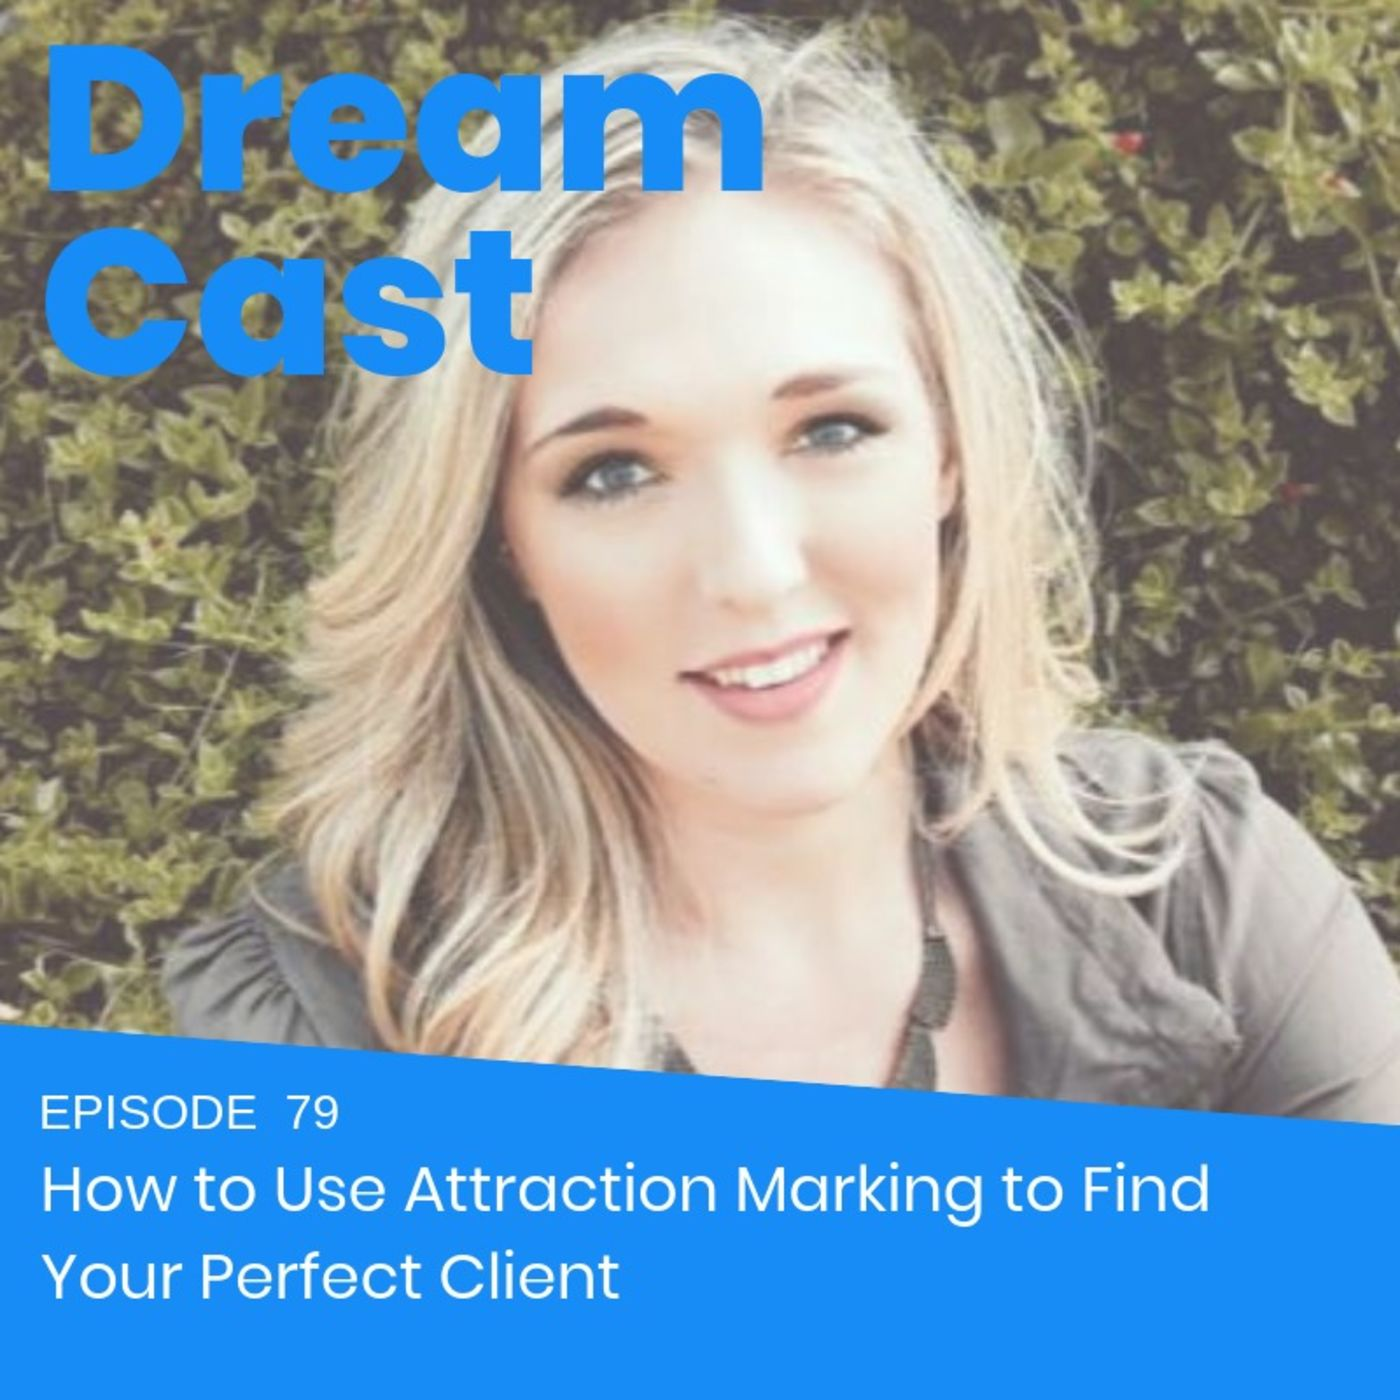 Episode 79 - How to Use Attraction Marketing to Find Your Perfect Audience